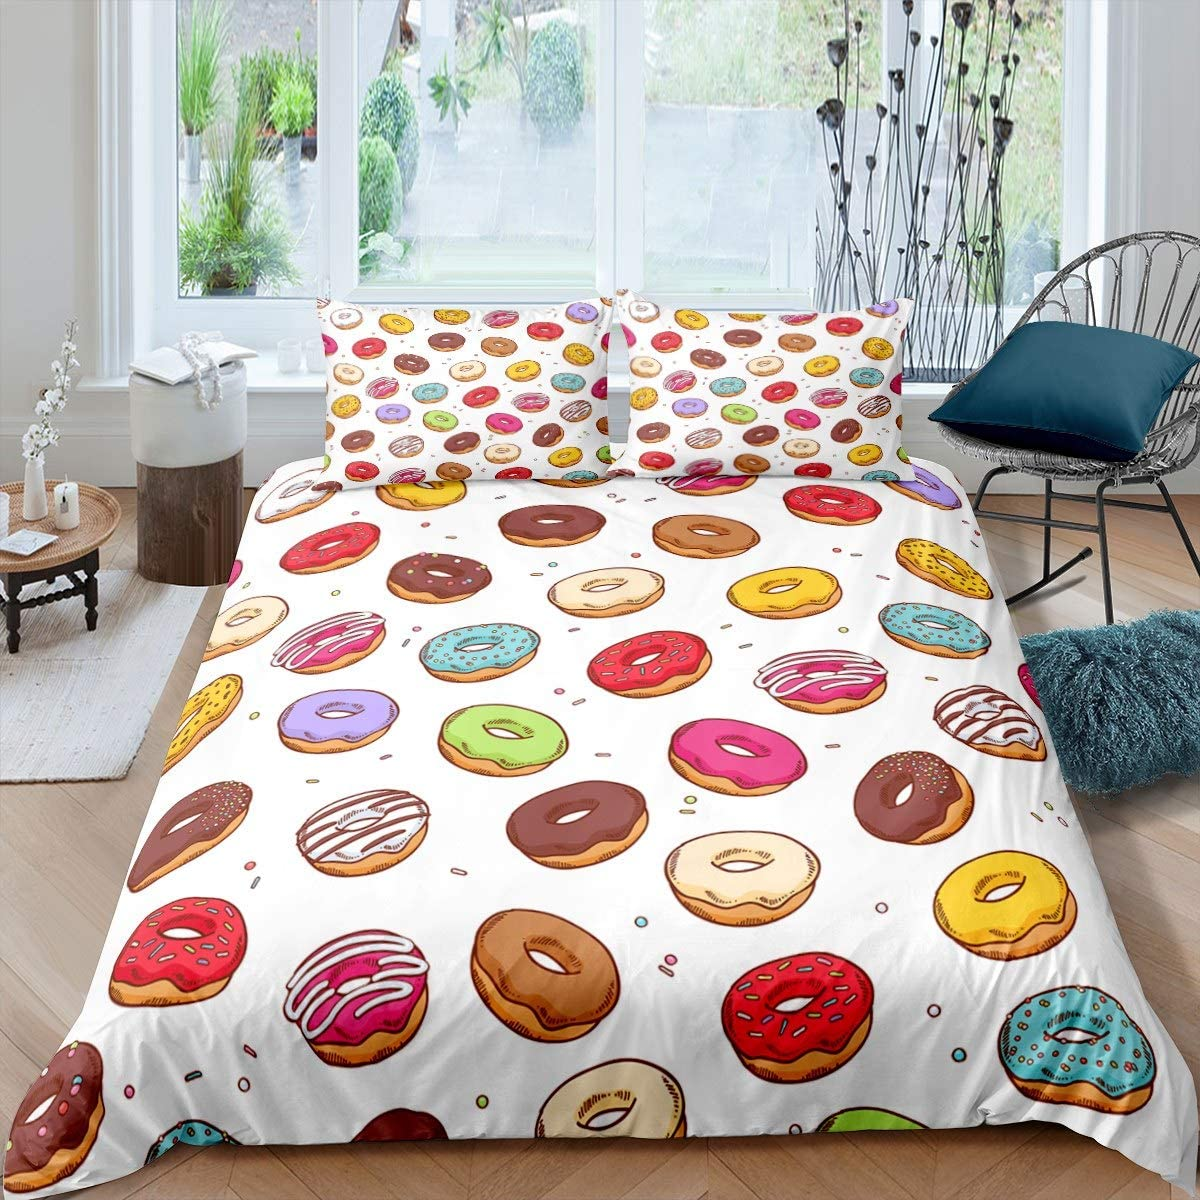 Feelyou Girls Bedding Set Twin Size for Kids Child Teens Cute Donuts Print Duvet Cover Set,Dessert Theme Comforter Cover Lovely Cartoon Foods Theme Funny Decor 2 Pcs Soft Bedspread Cover